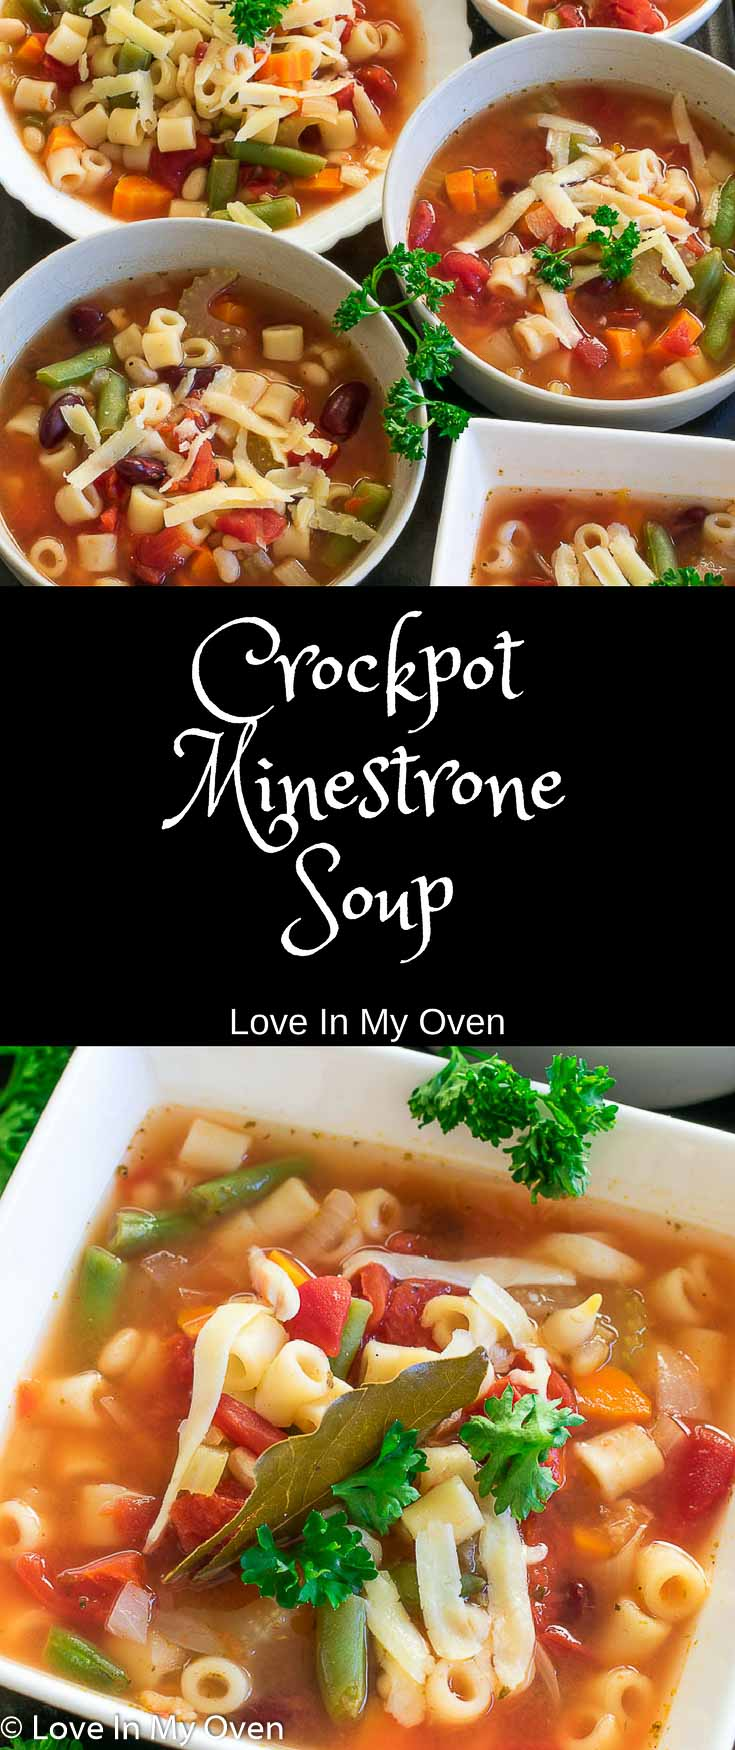 Skip the can and try this super easy dump-and-go slow-cooker minestrone soup that is loaded with hearty, fiber-rich vegetables - it tastes amazing! Perfect for meatless Monday!